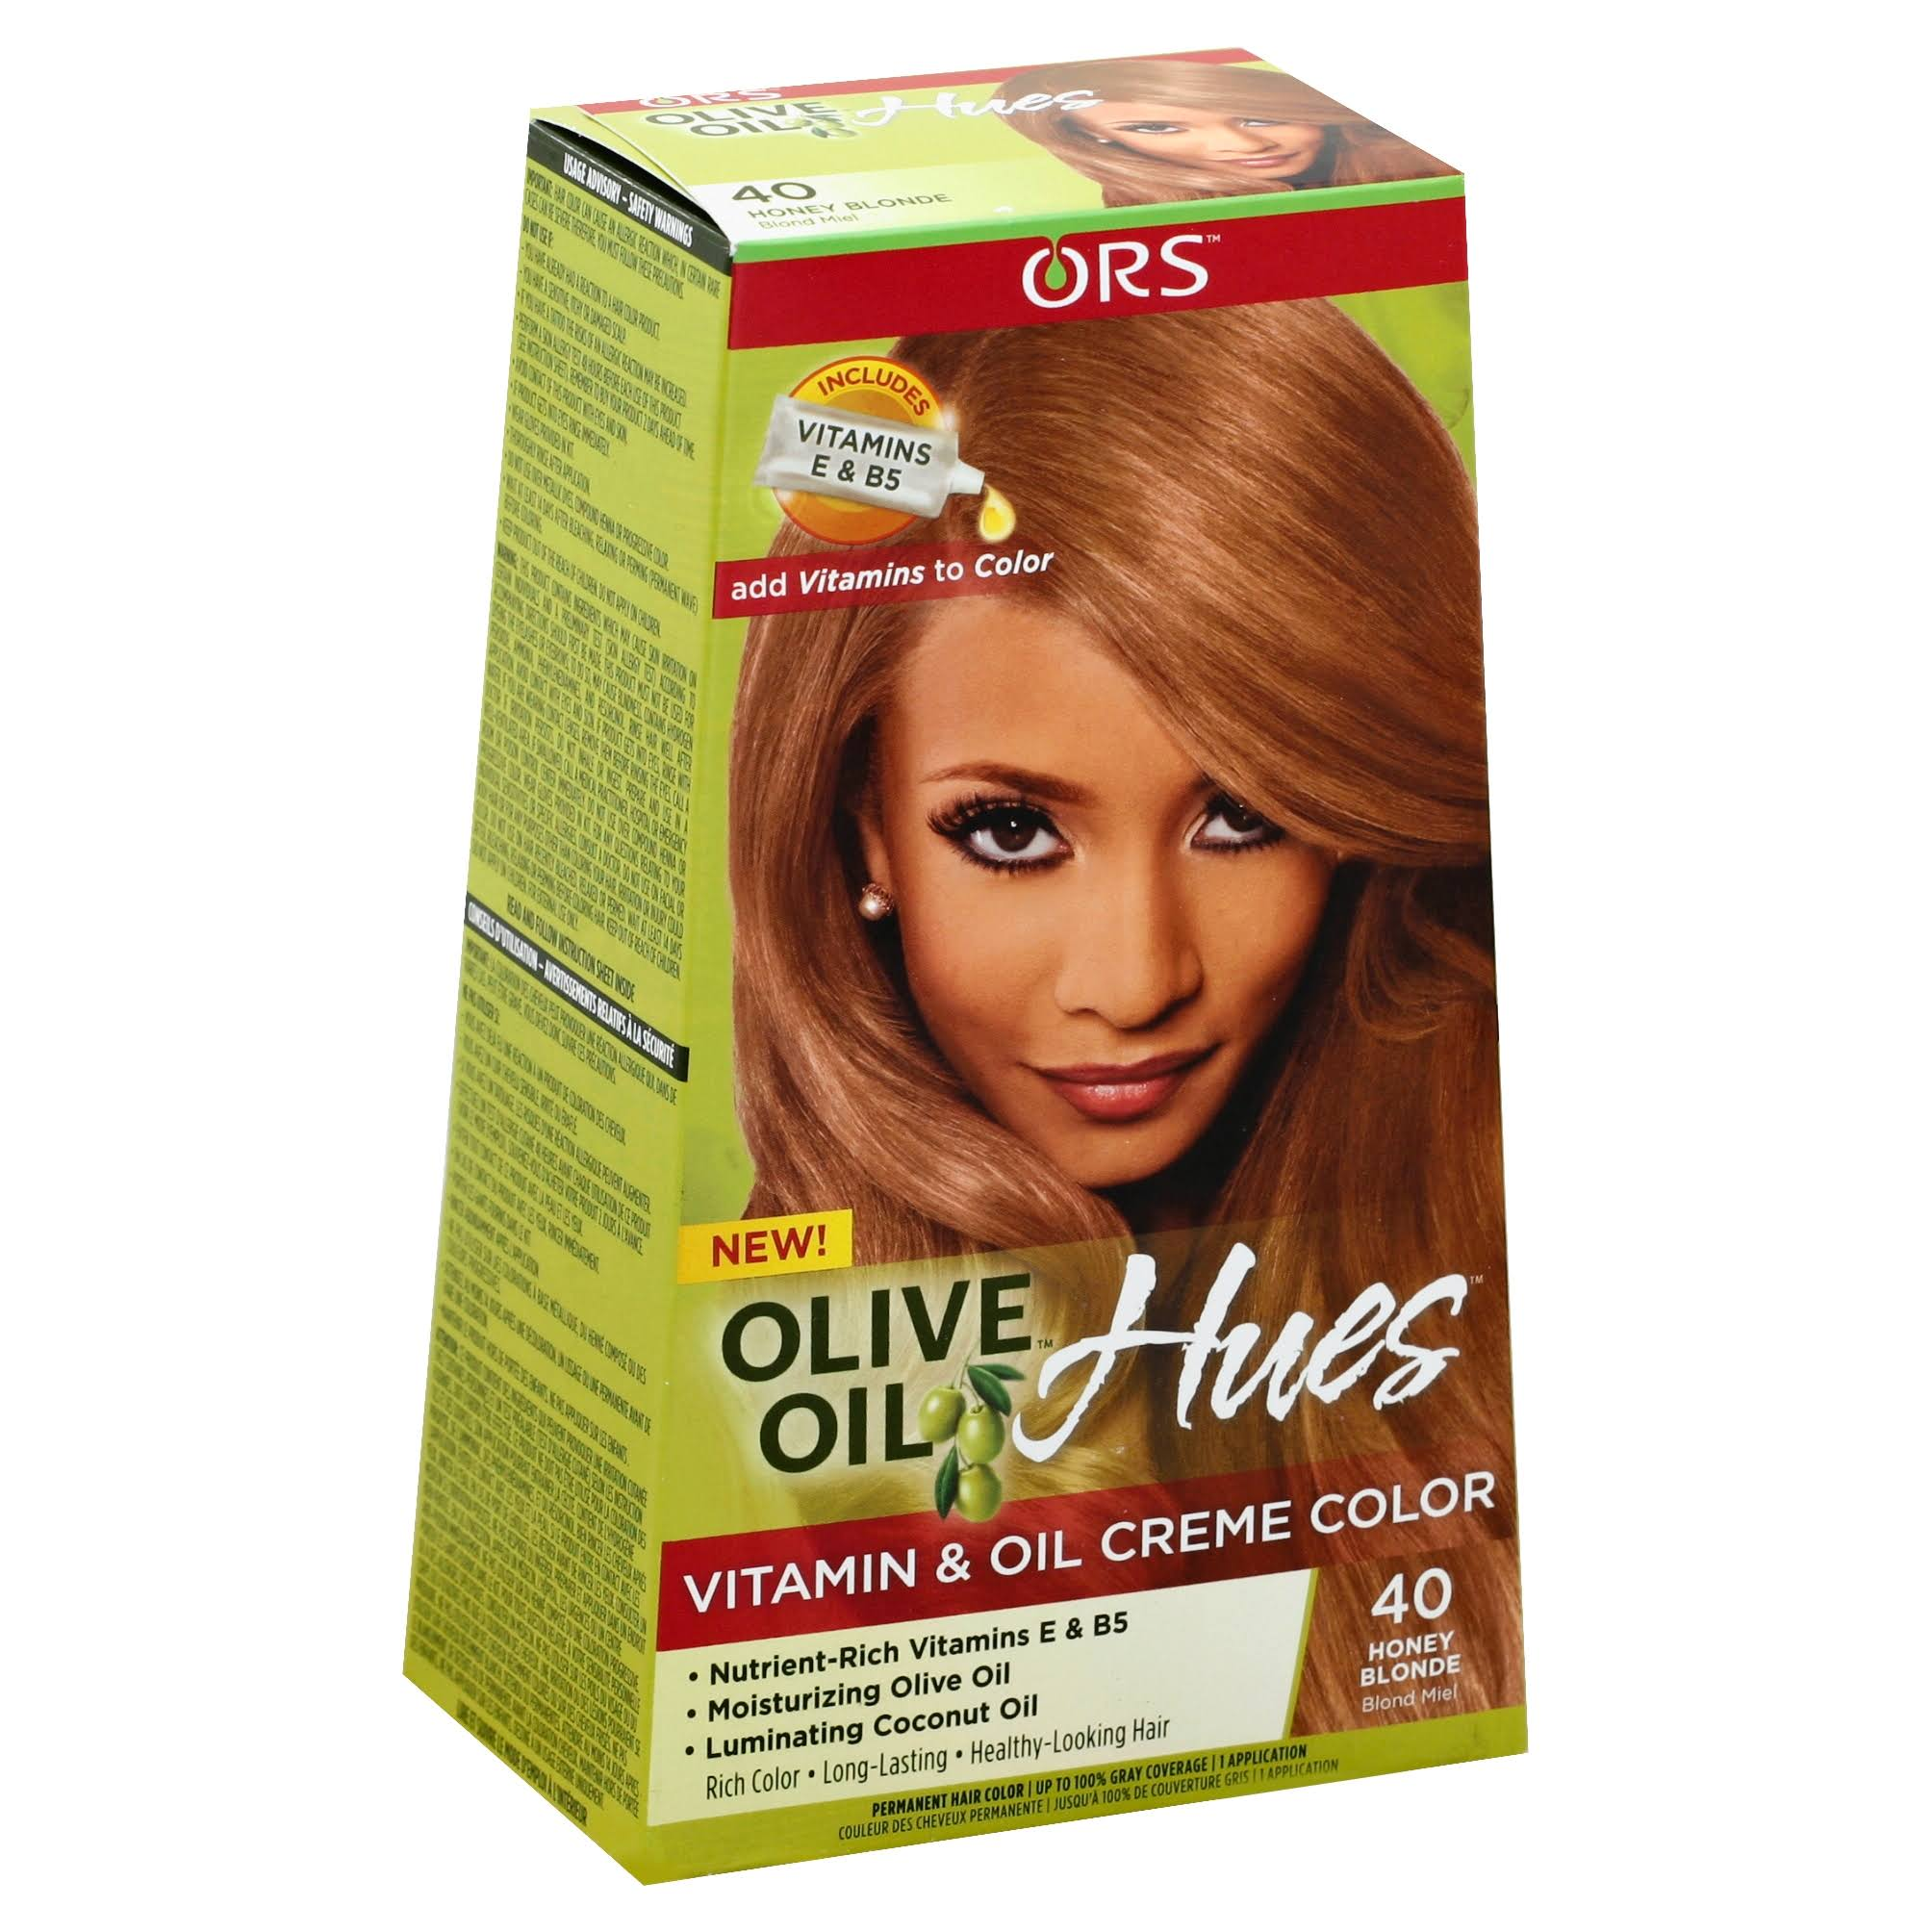 Ors Olive Oil Hues Vitamin & Oil Creme Color - 40 Honey Blonde